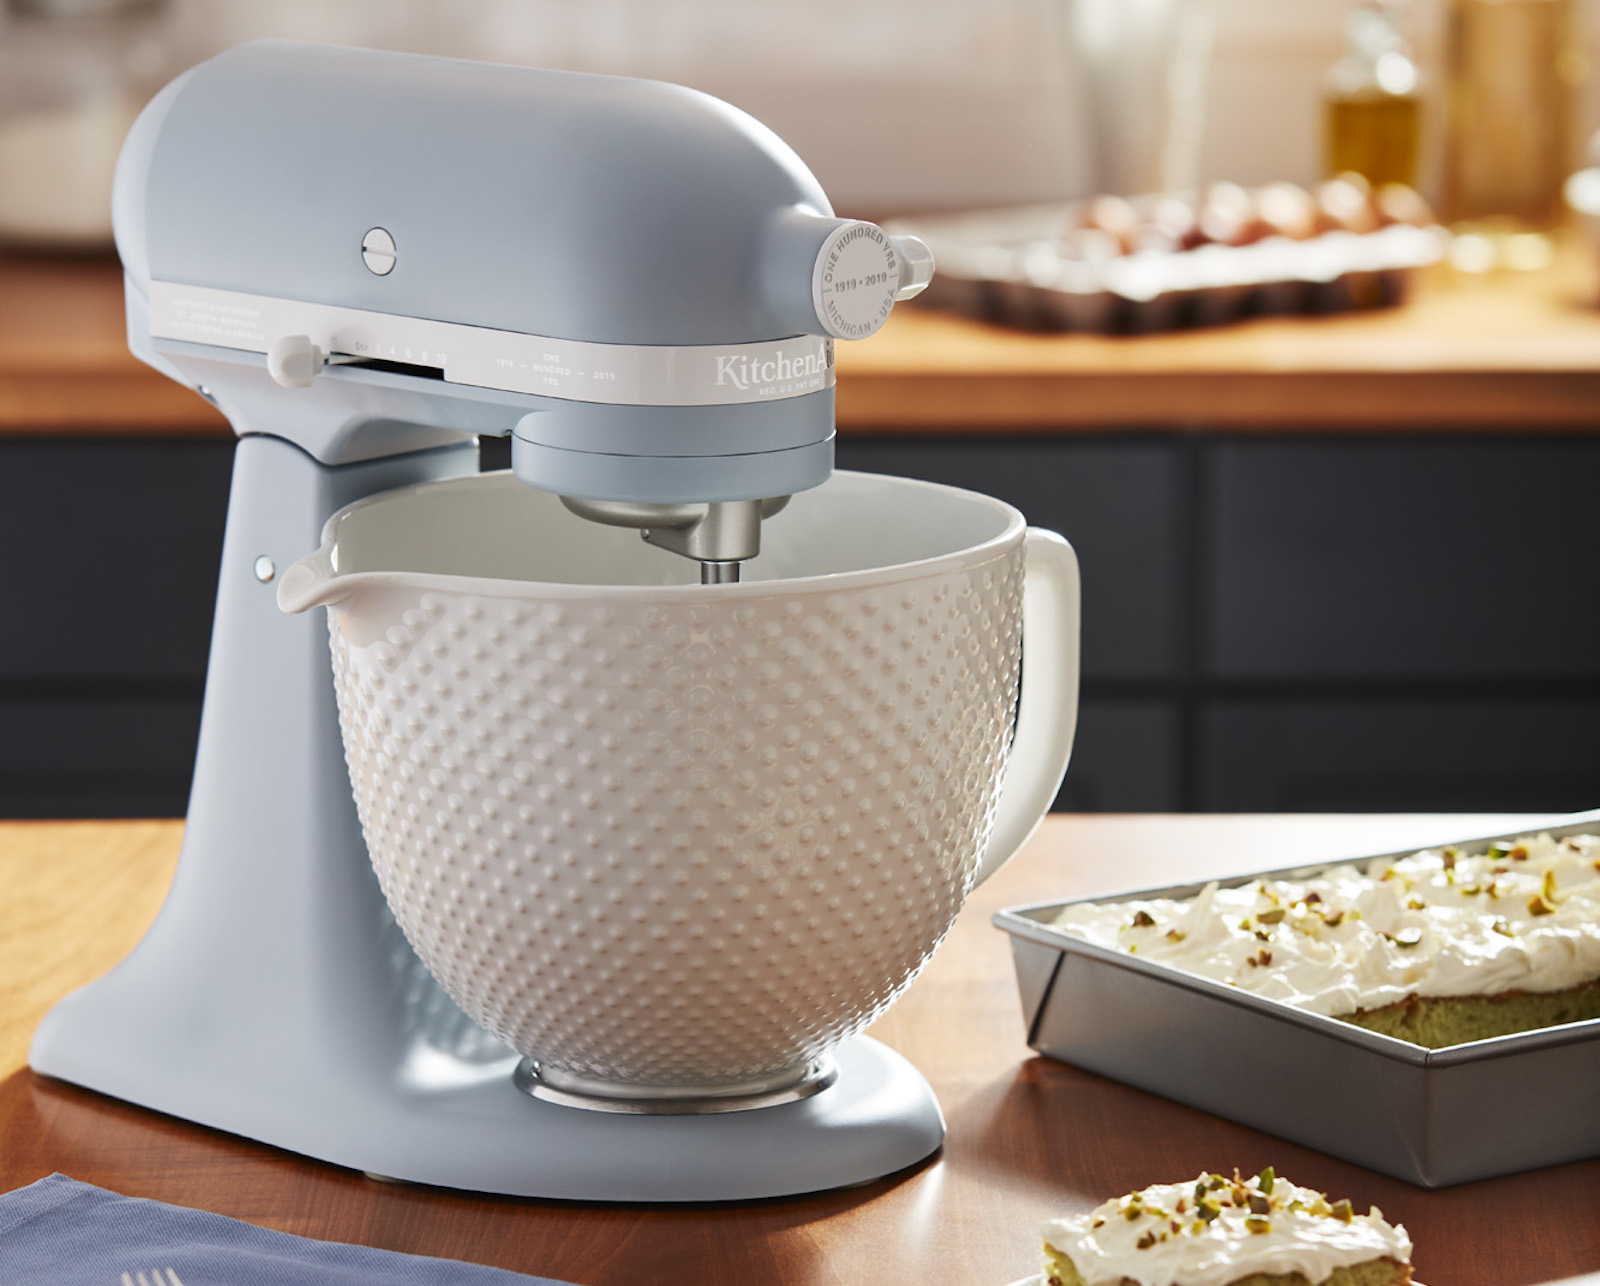 KitchenAid Just Released A Retro Inspired Mixer Color To Celebrate The  Brandu0027s 100th Anniversary   Food U0026 Wine